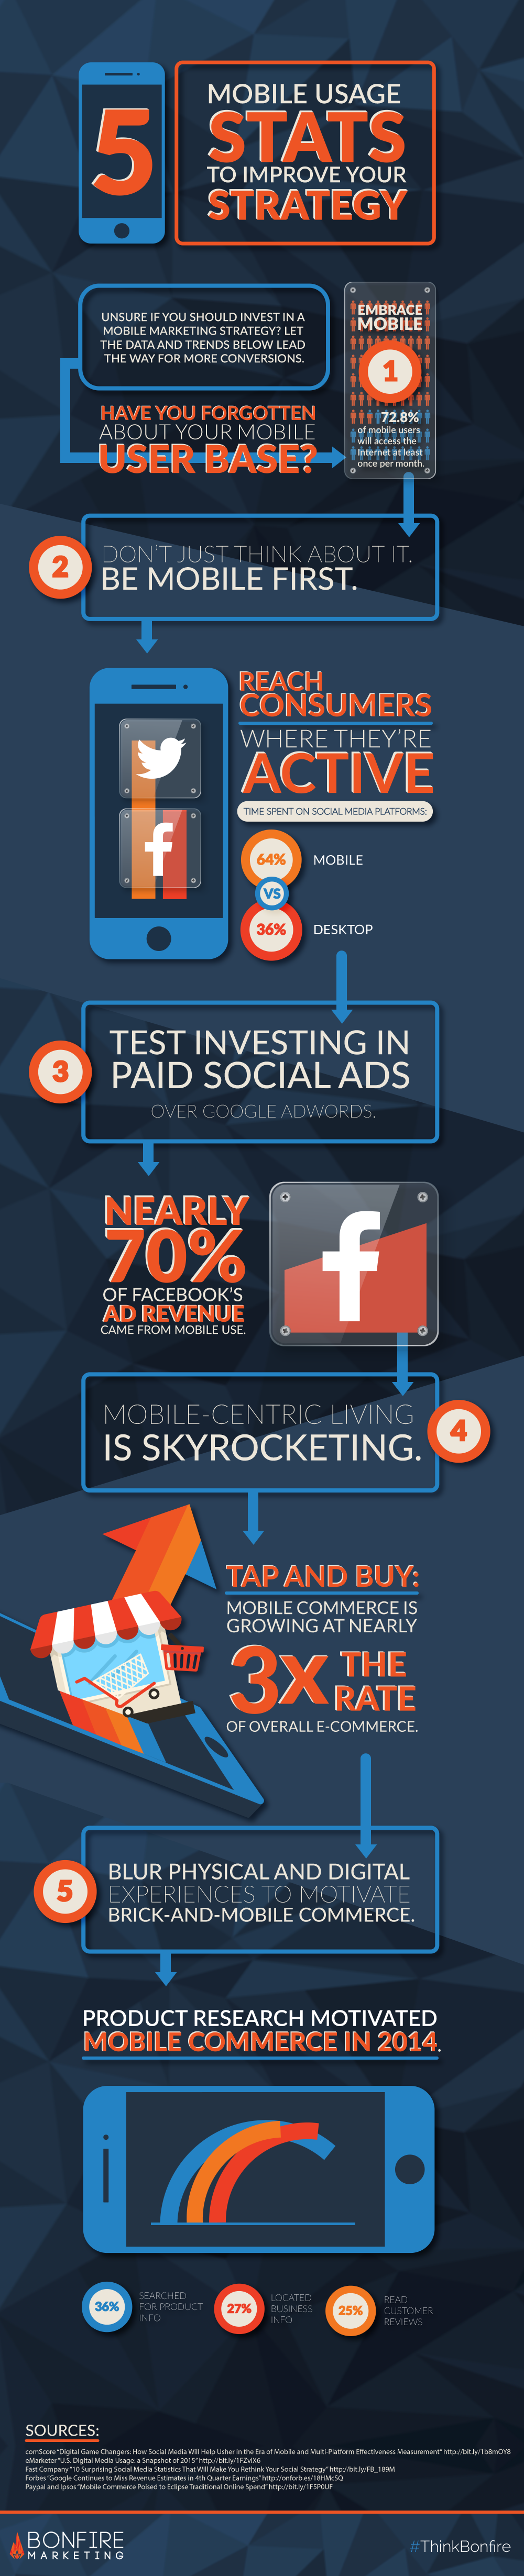 Time to Rethink Your Mobile Strategy - #Infographic #marketing